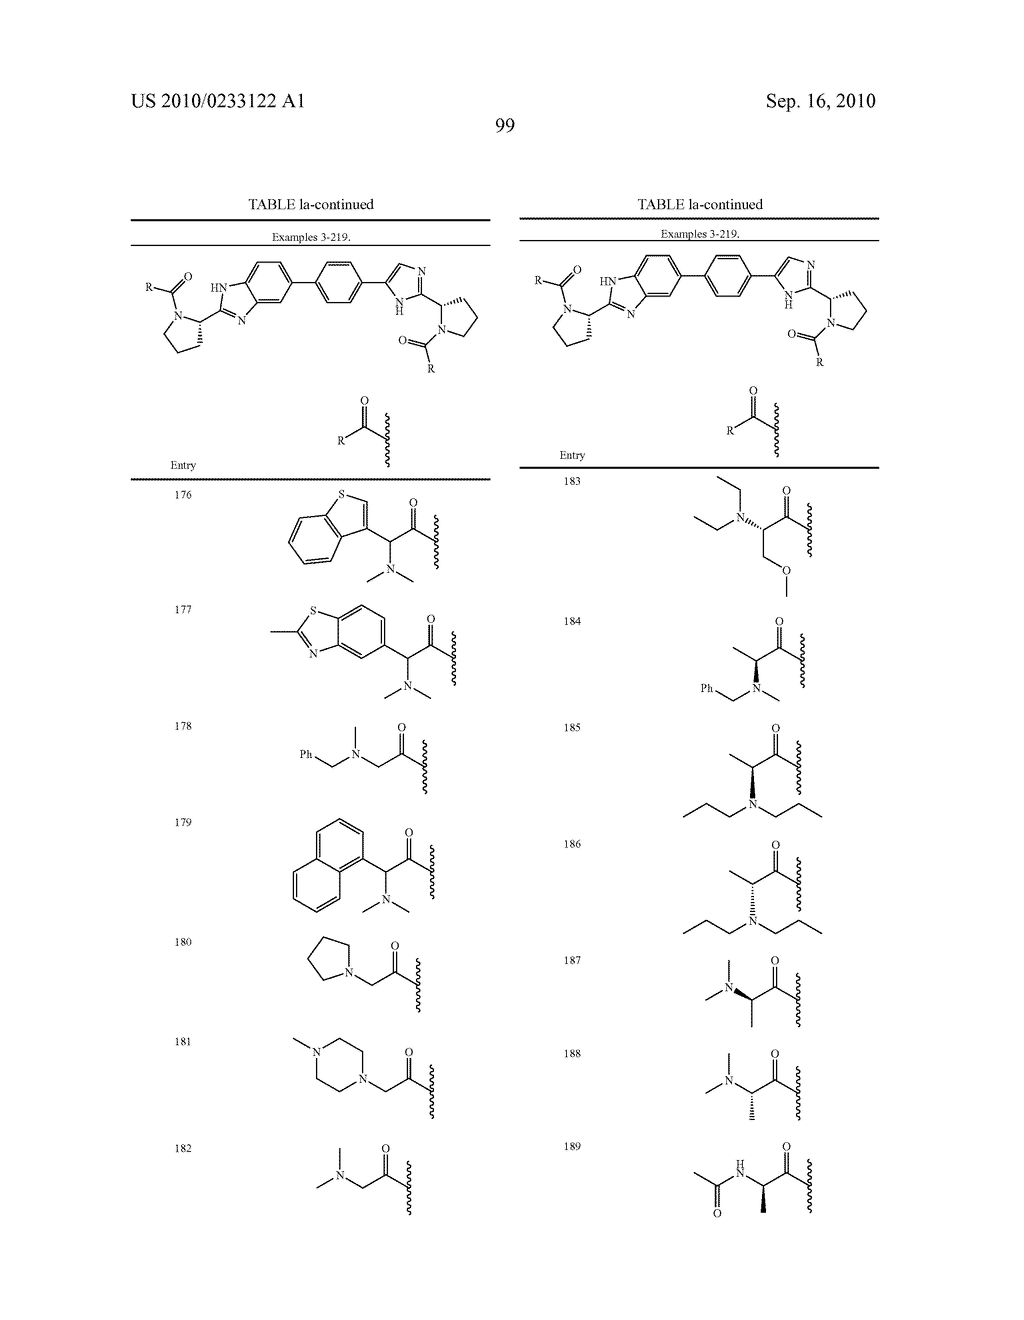 NOVEL BENZIMIDAZOLE DERIVATIVES - diagram, schematic, and image 100